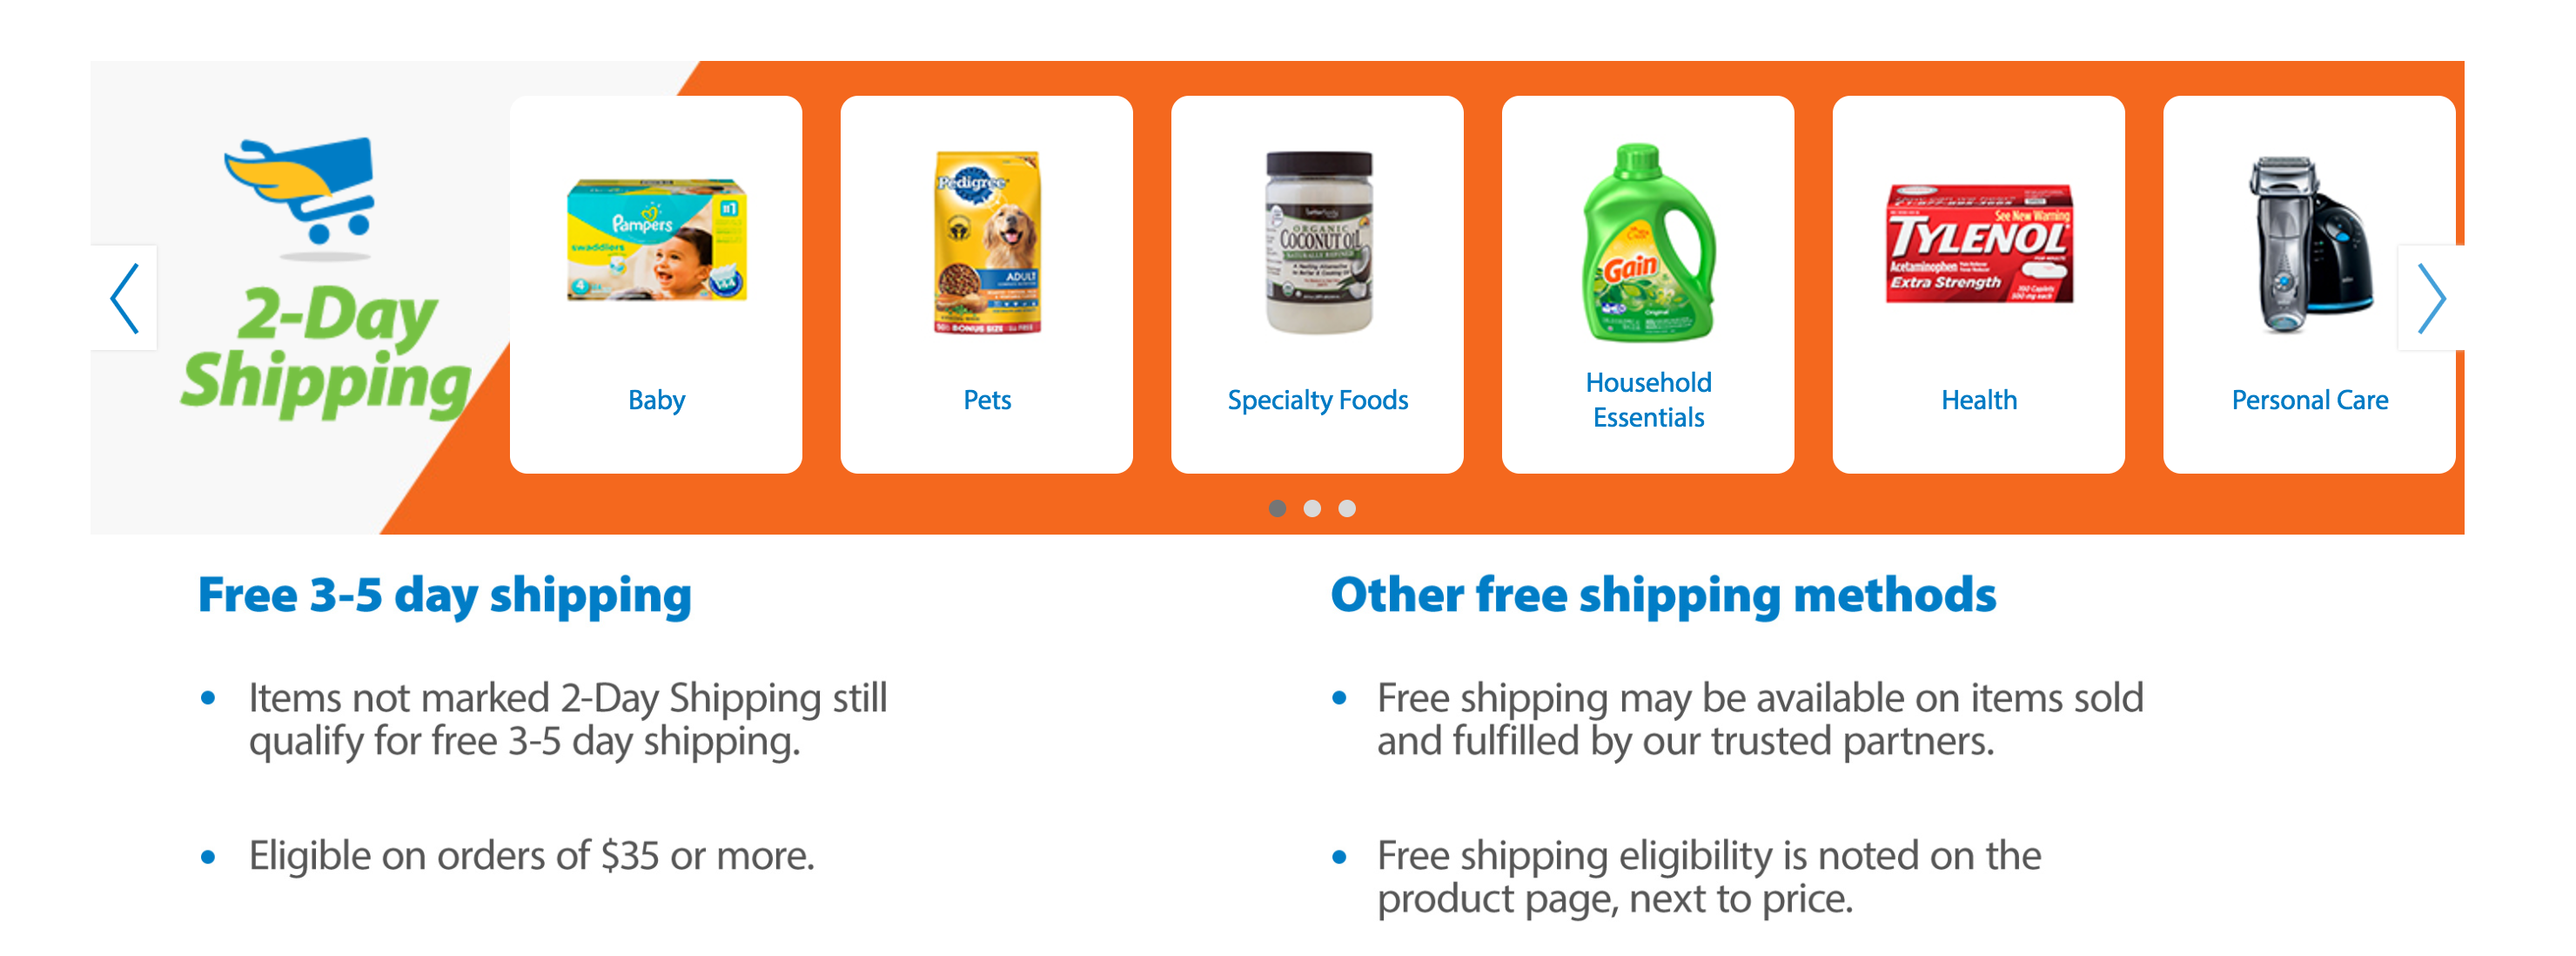 walmart-free-two-day-shipping-02